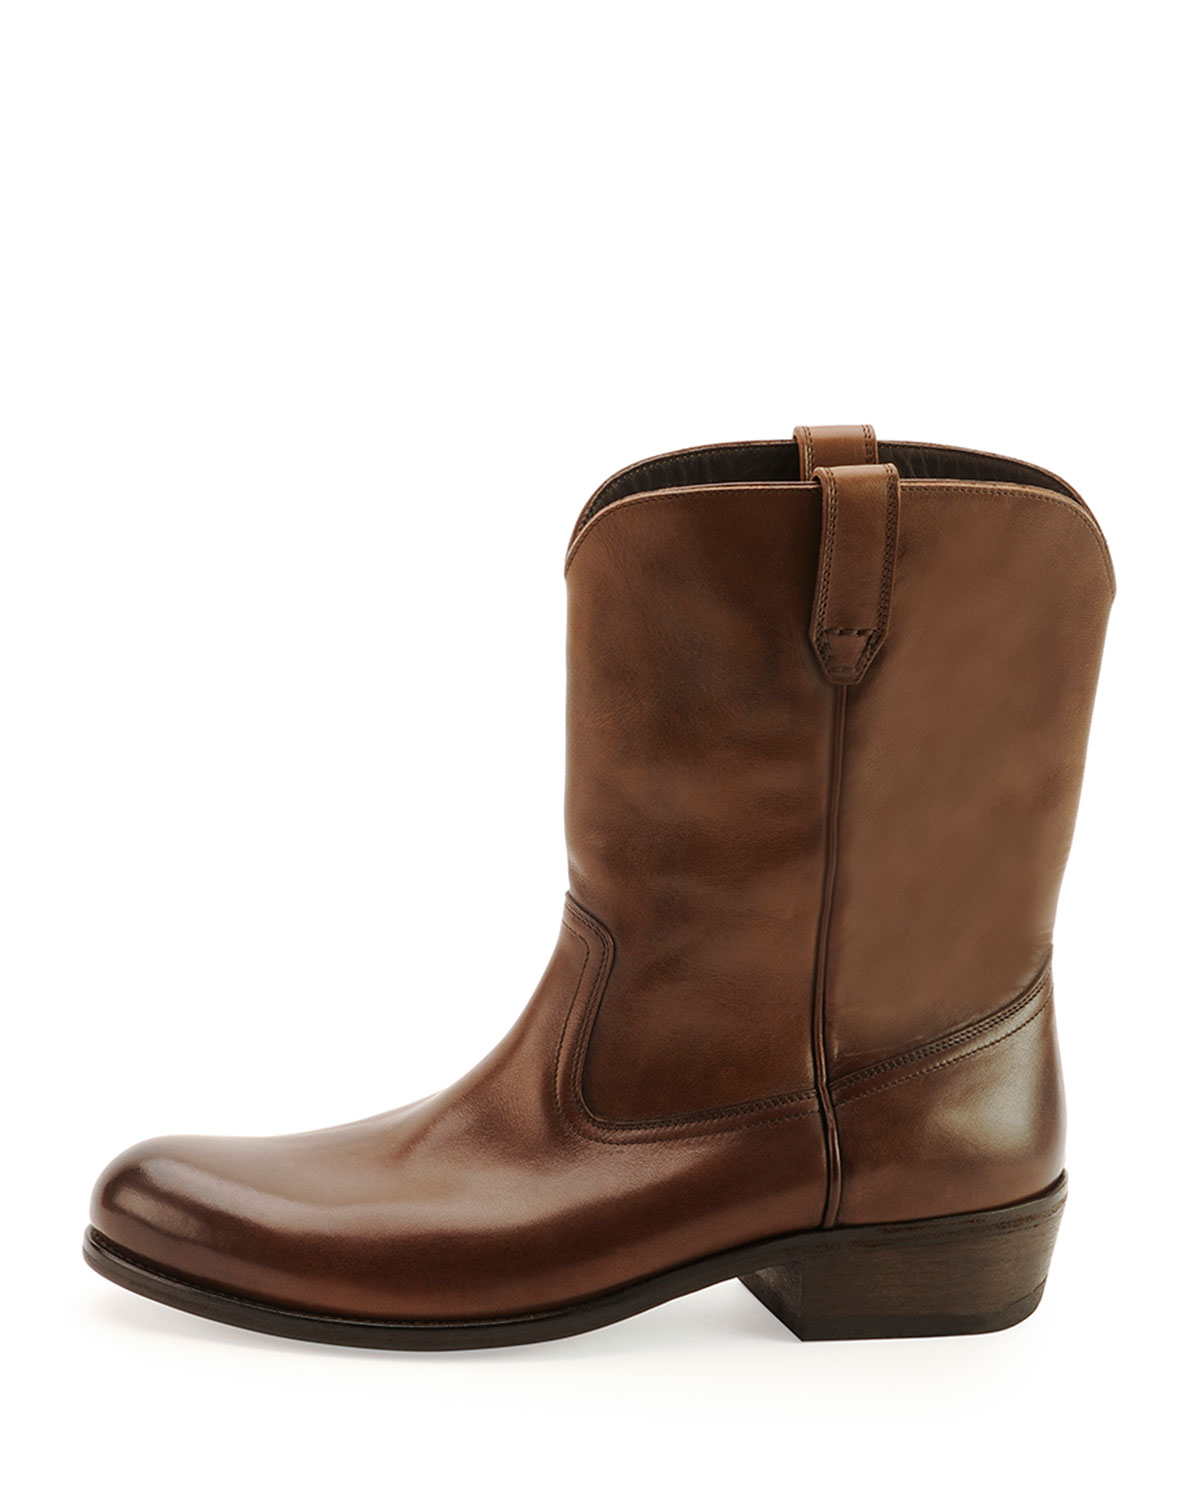 tom ford christopher leather cowboy boot in brown for